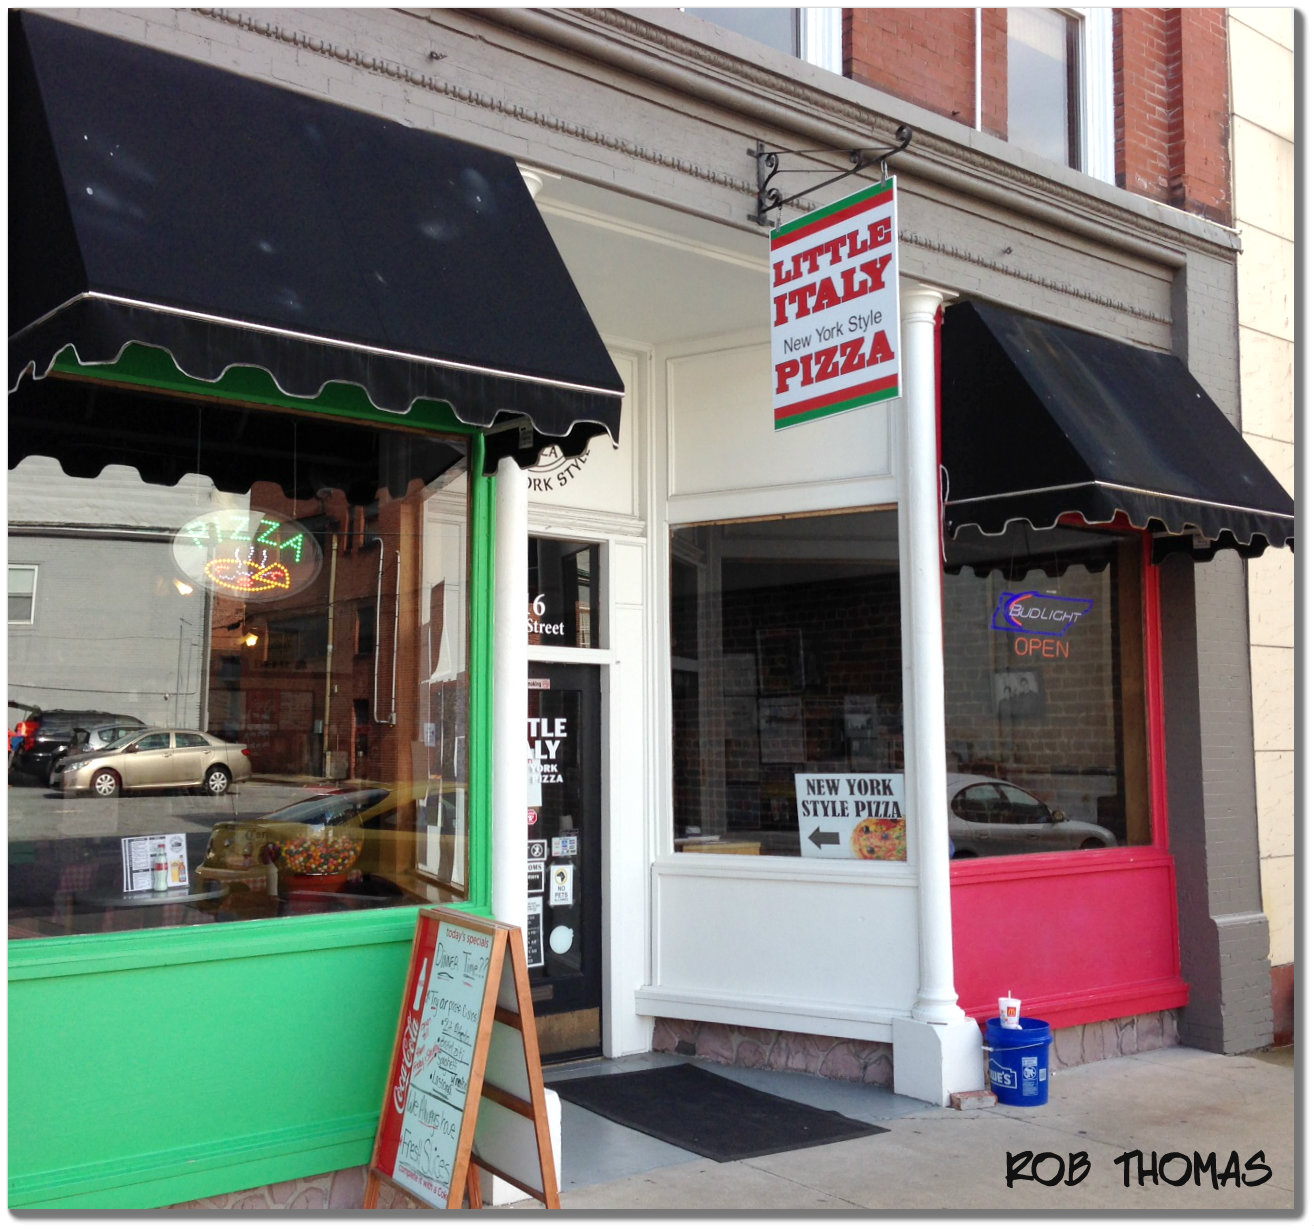 Great Places Eat Virginia Beach: Great Places To Eat In Downtown Bristol TN~VA €�.Check Out